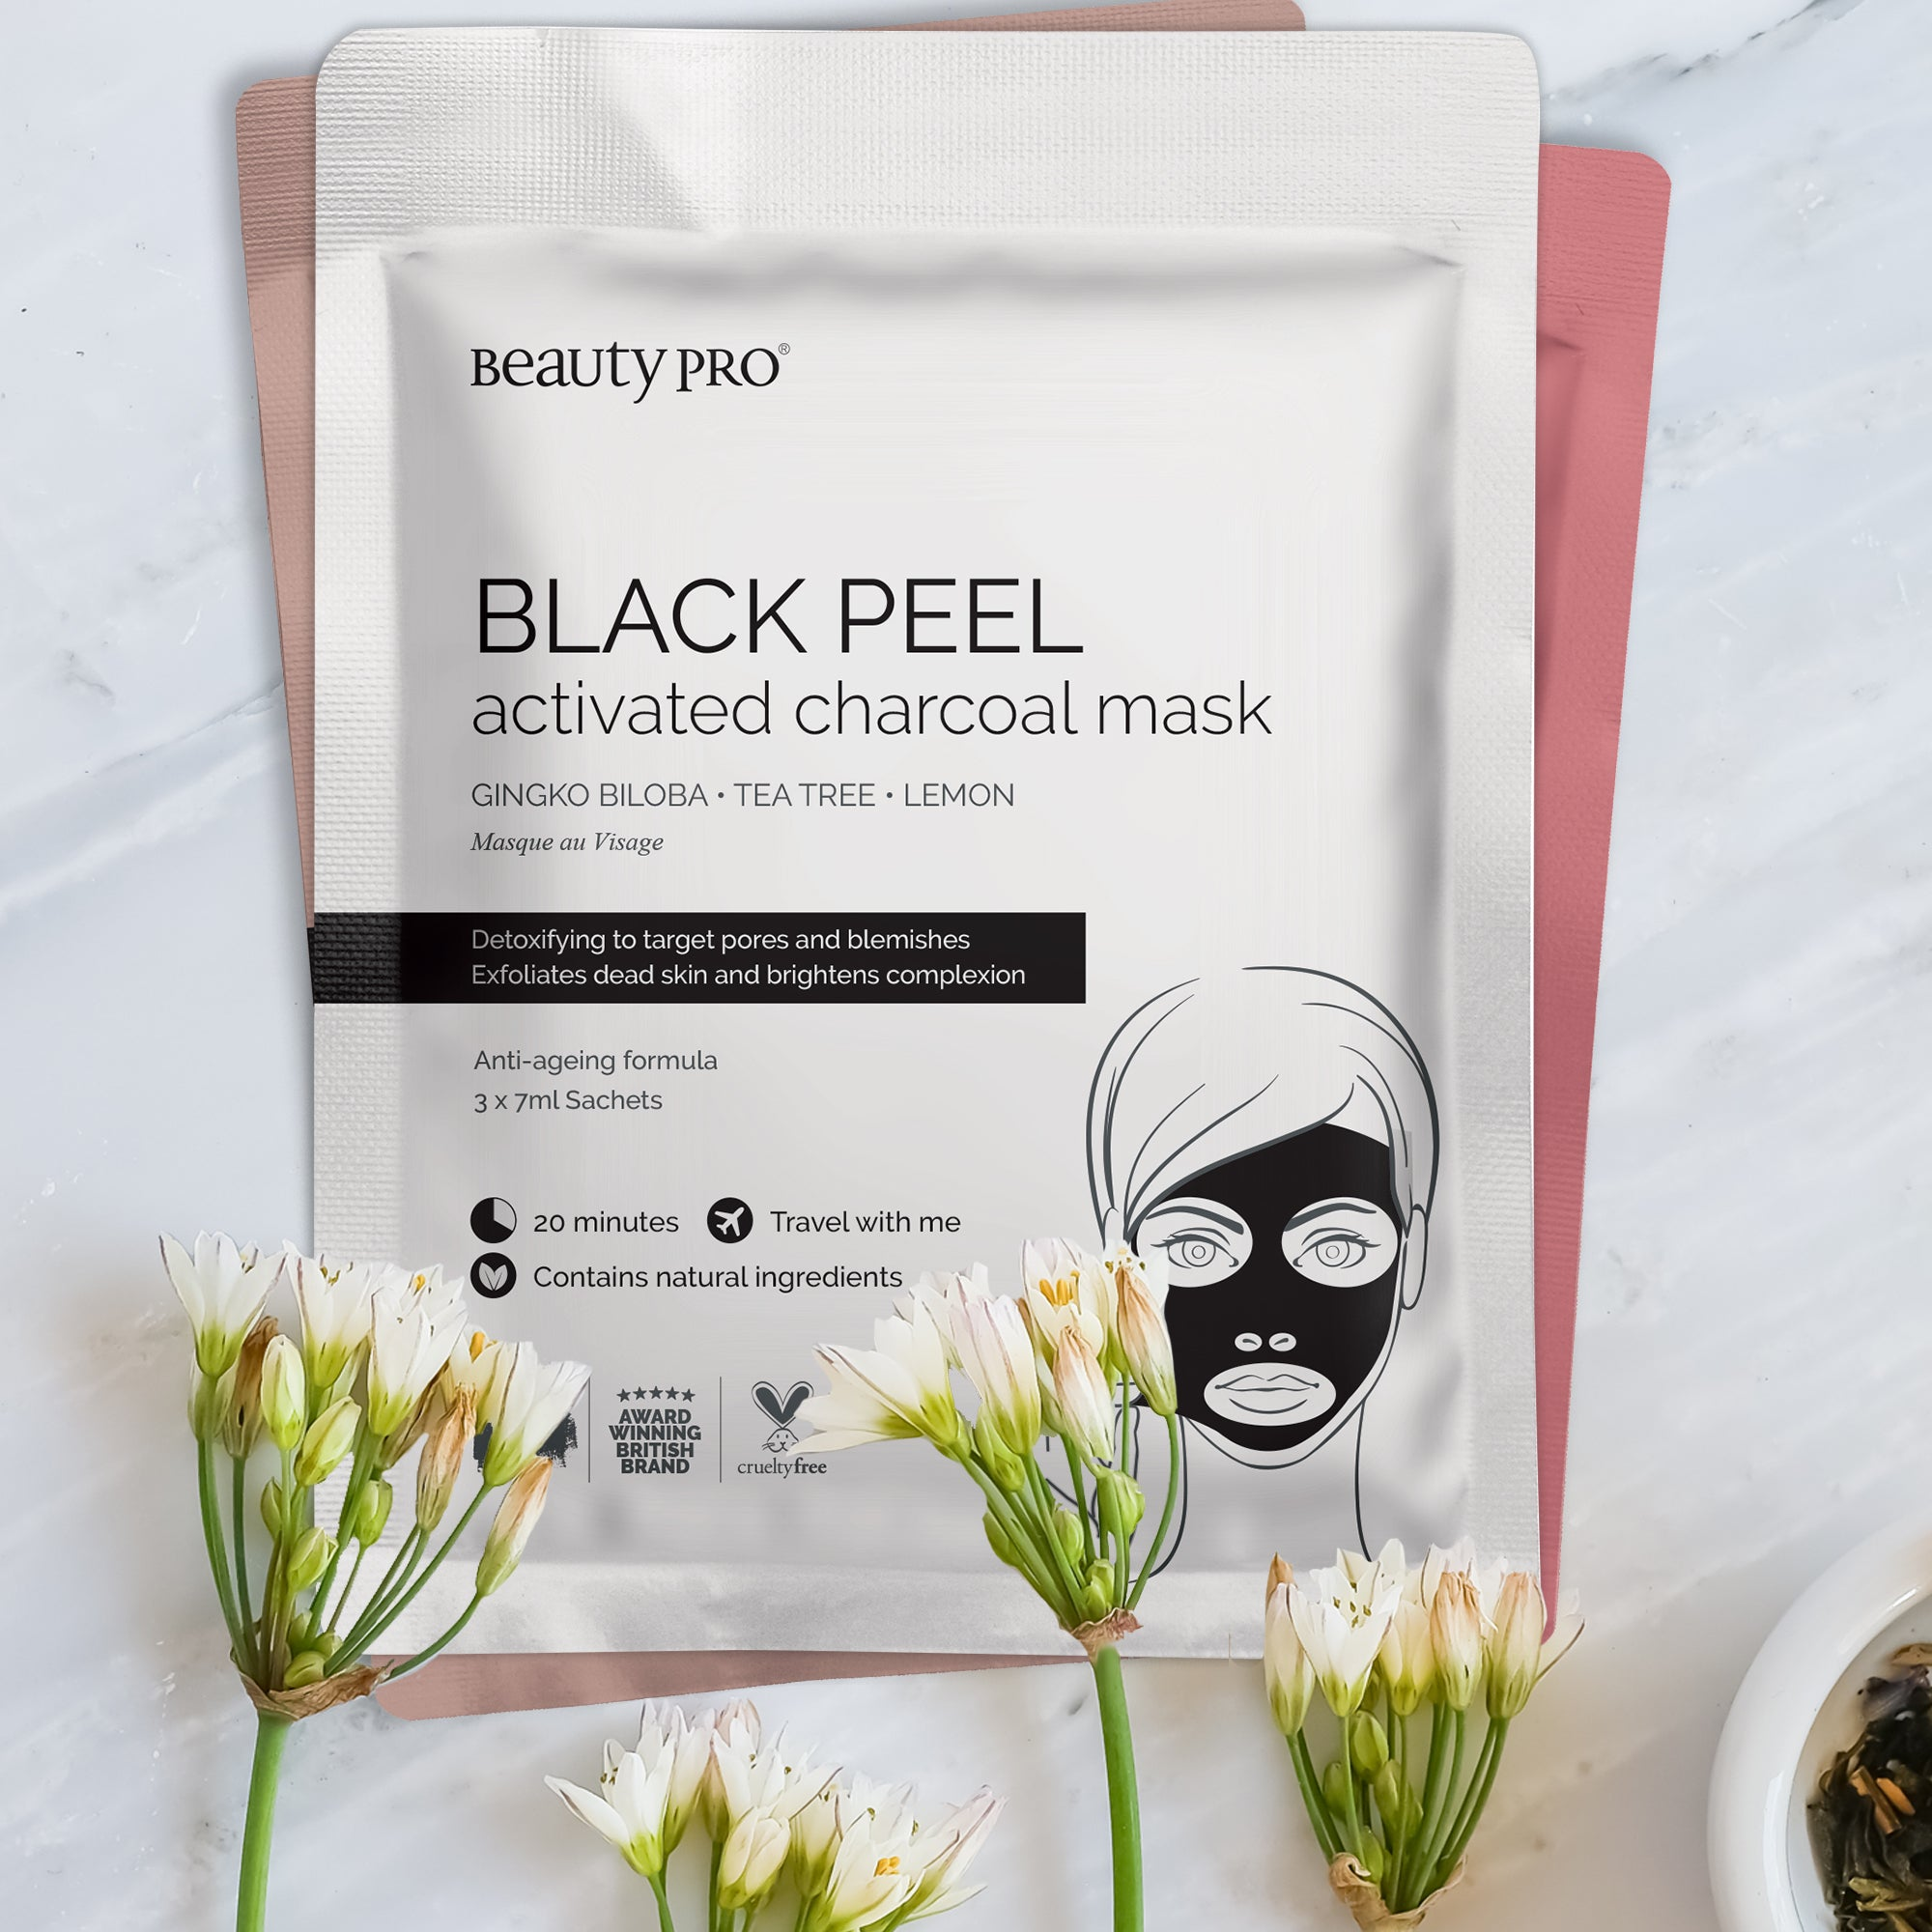 BLACK PEEL Charcoal Mask